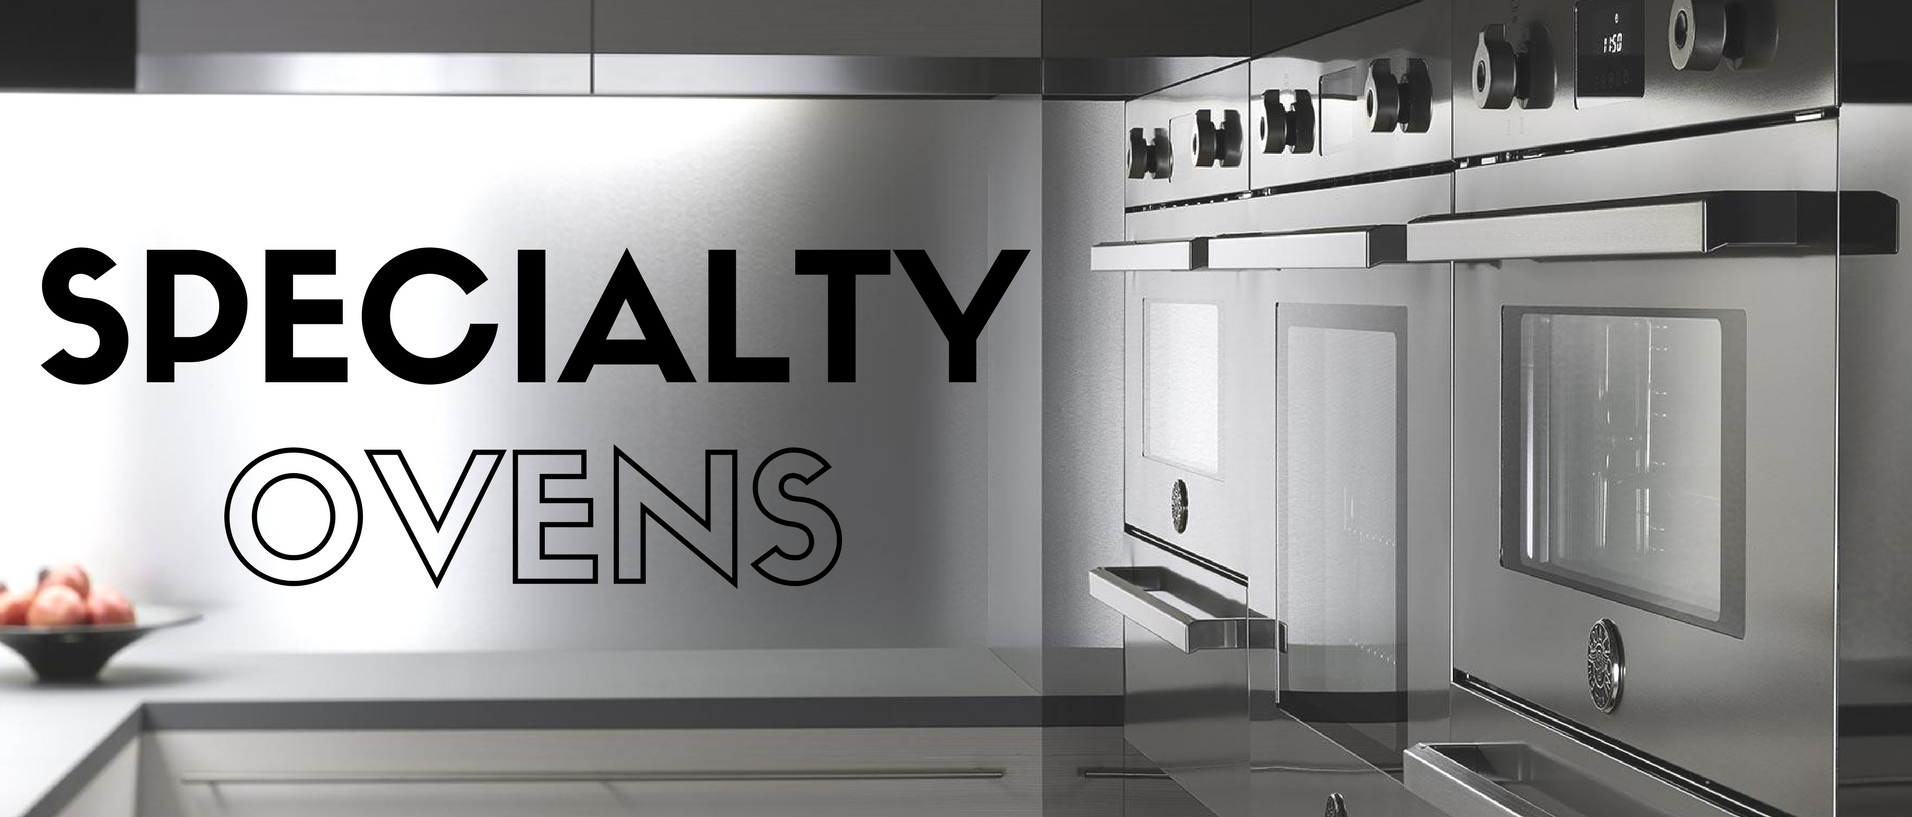 Specialty Ovens Steam and Speed Banner